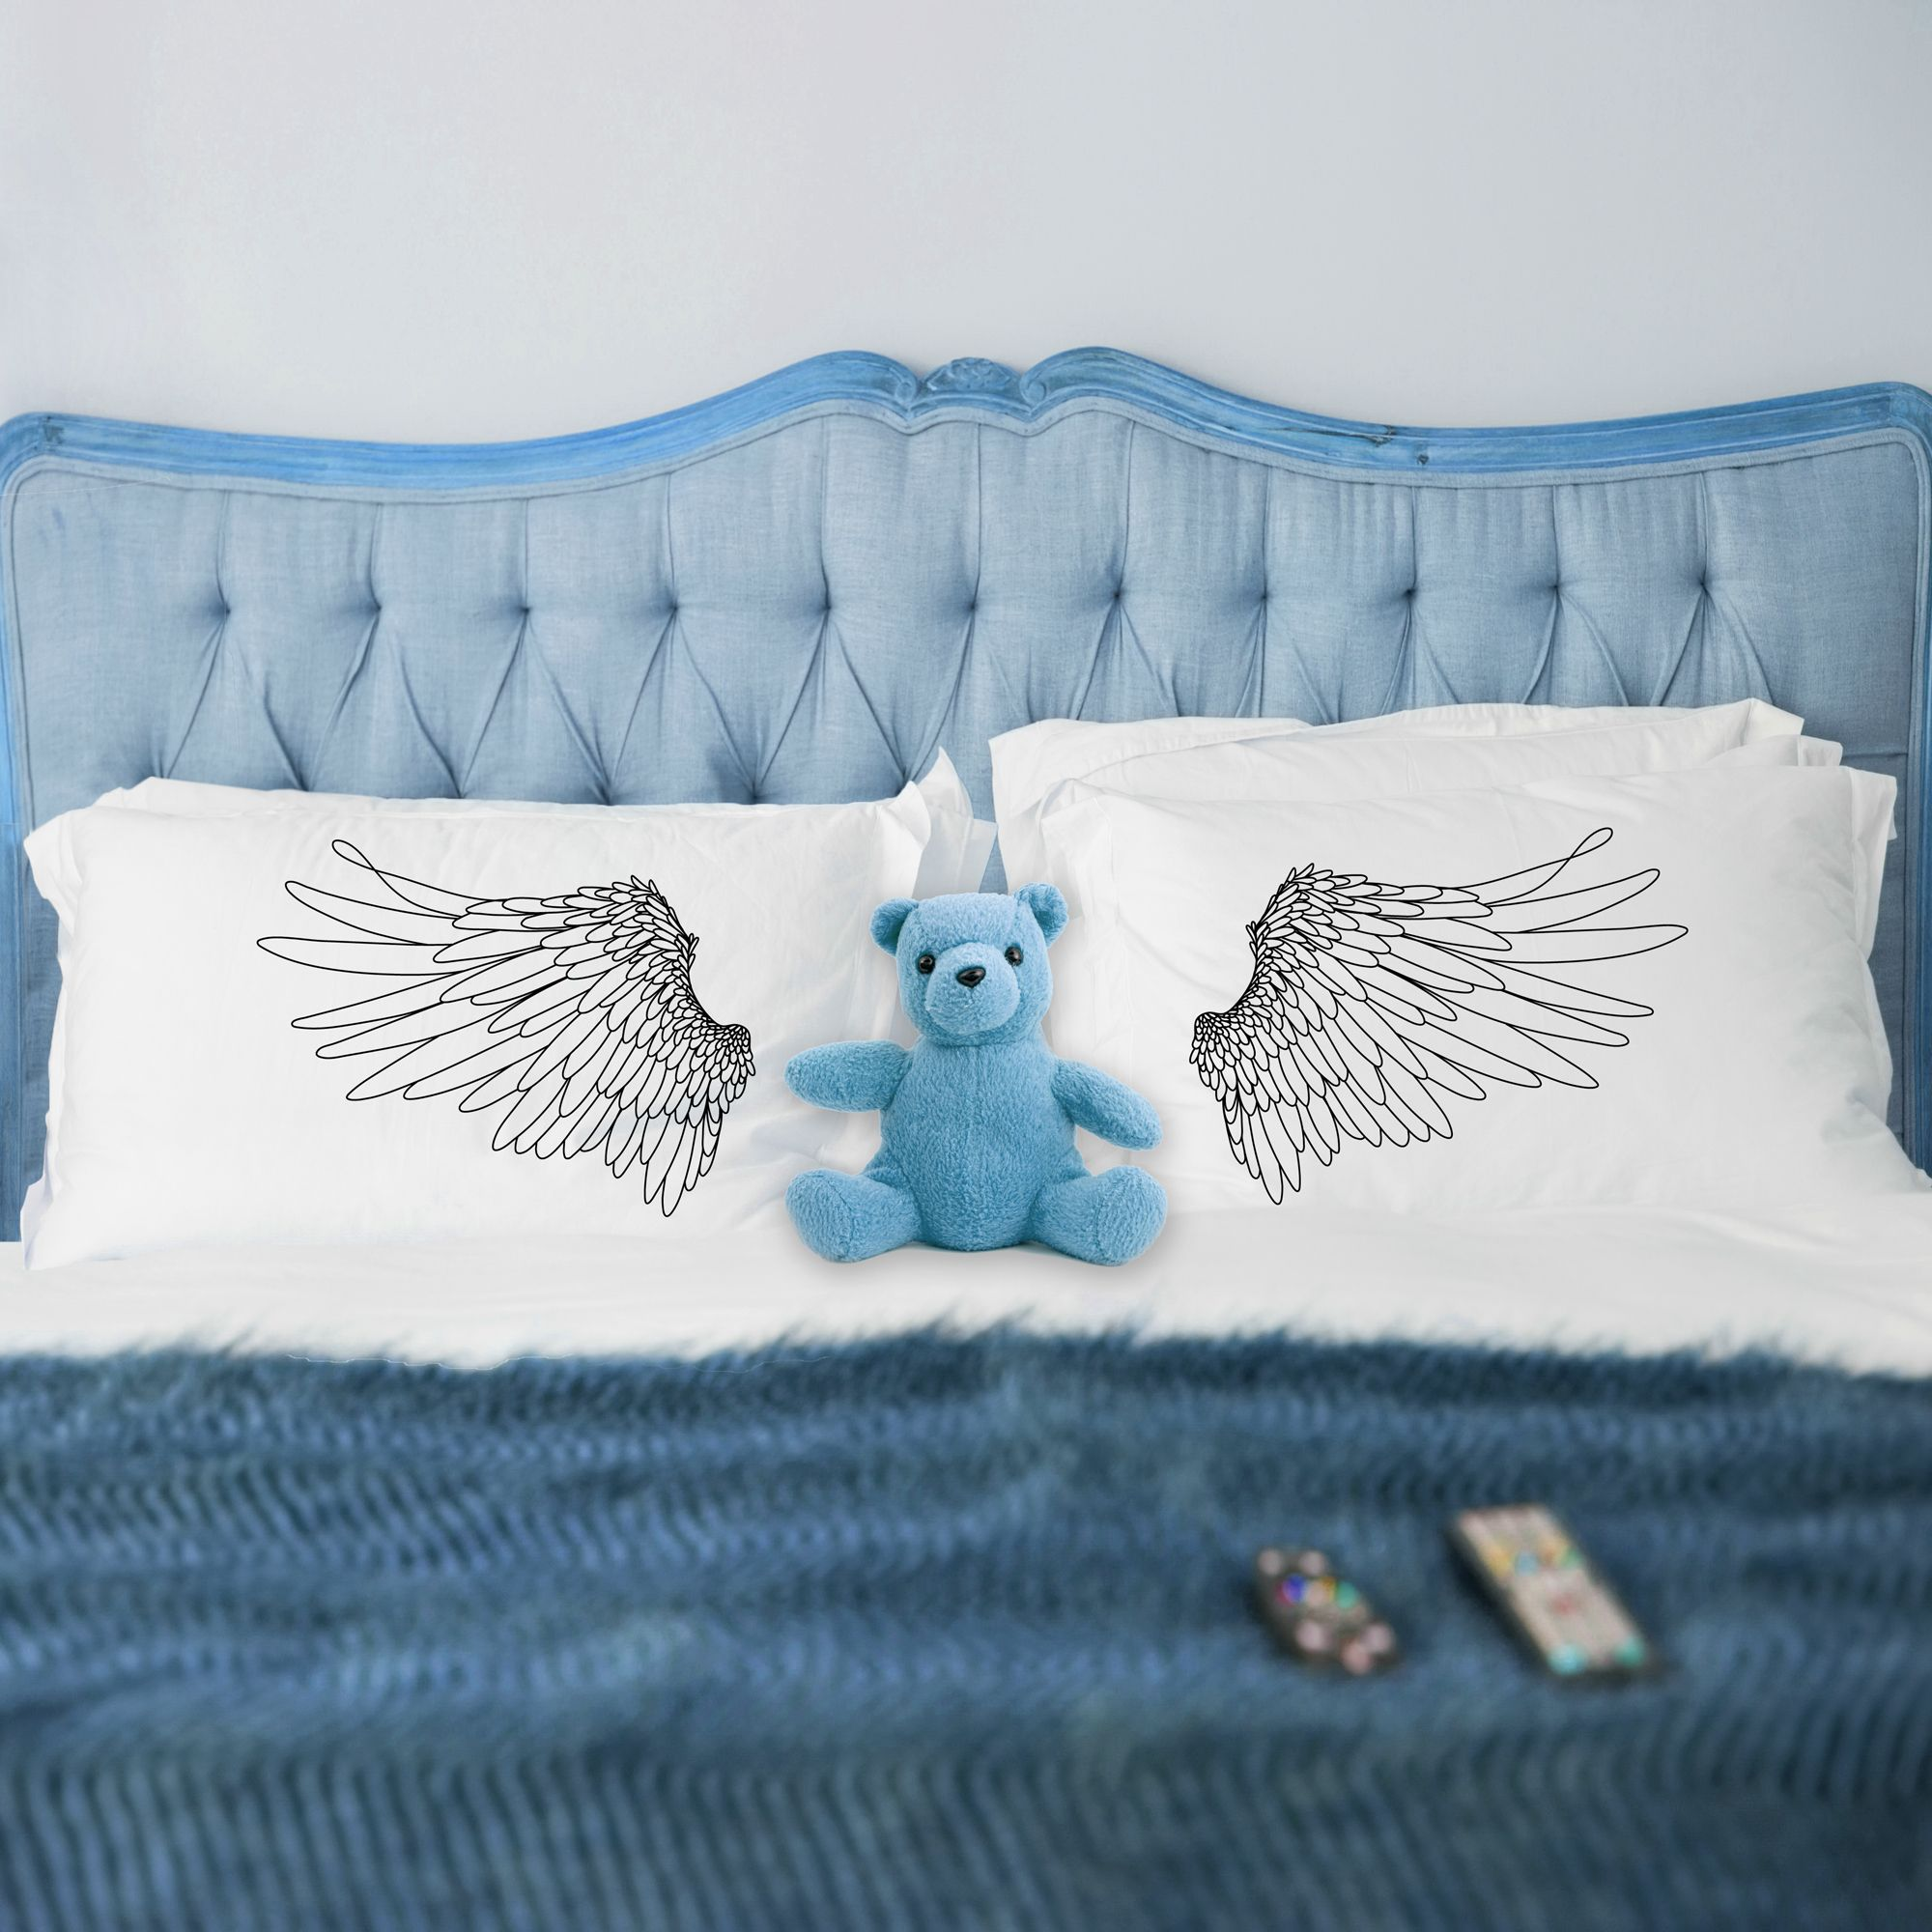 Angel Wings Printed Pillowcases White Bedding Dorm Decorations Pillow Talk